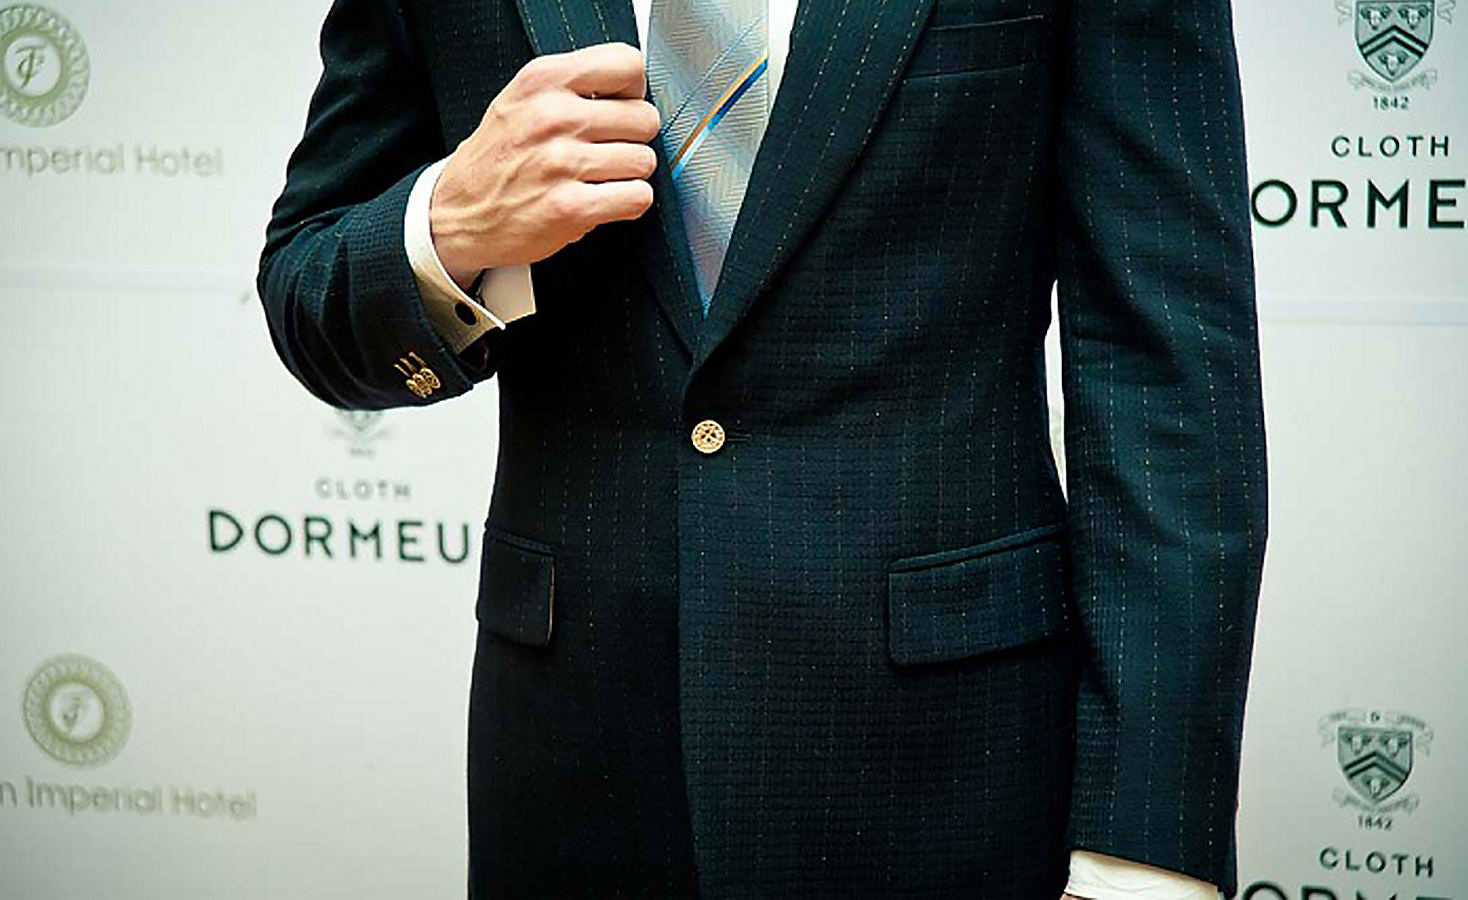 The World's One Of The Most Expensive Suits